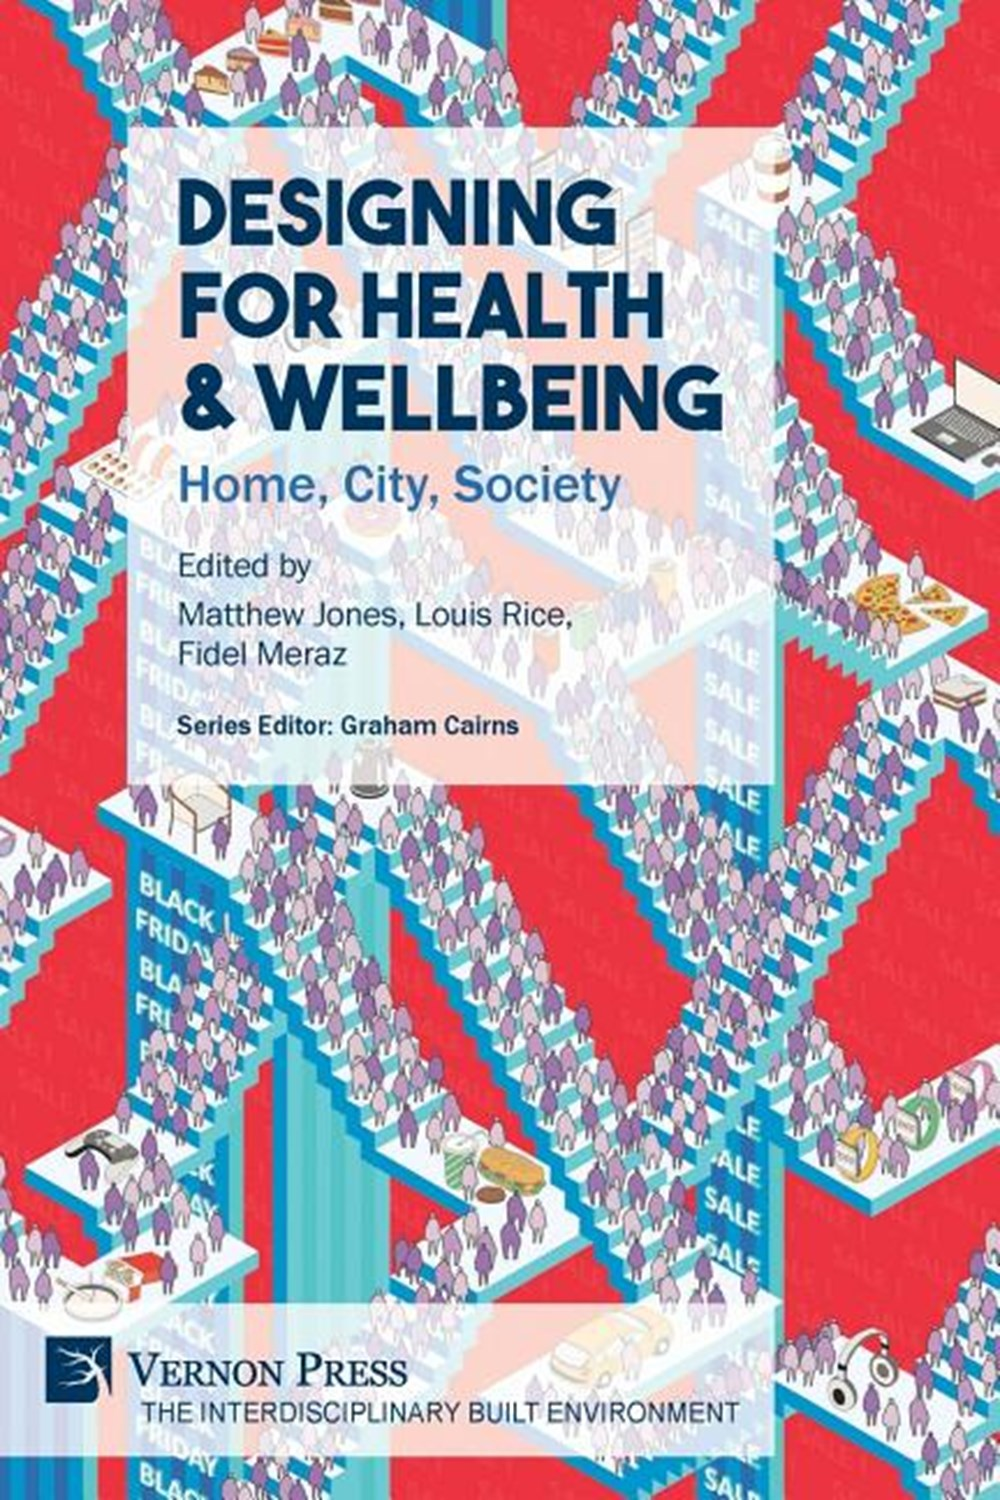 Designing for Health & Wellbeing Home, City, Society